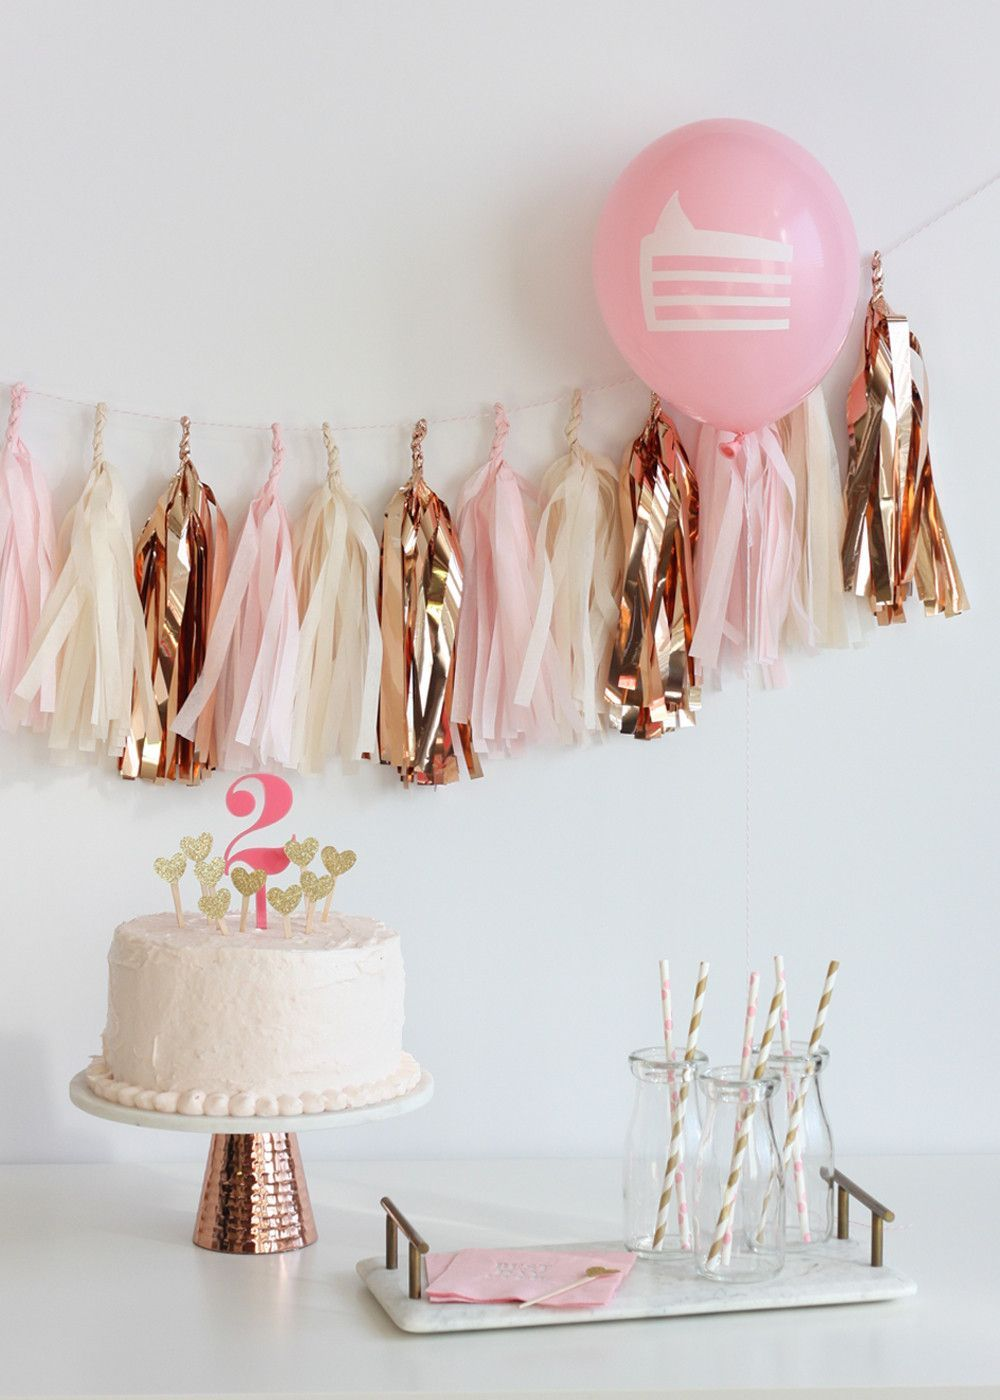 Our Rose Gold Garland is perfect for a bridal shower and sweet parties with  your girls. party garland: span about 6 feet and comes with 16 tassels per  kit.